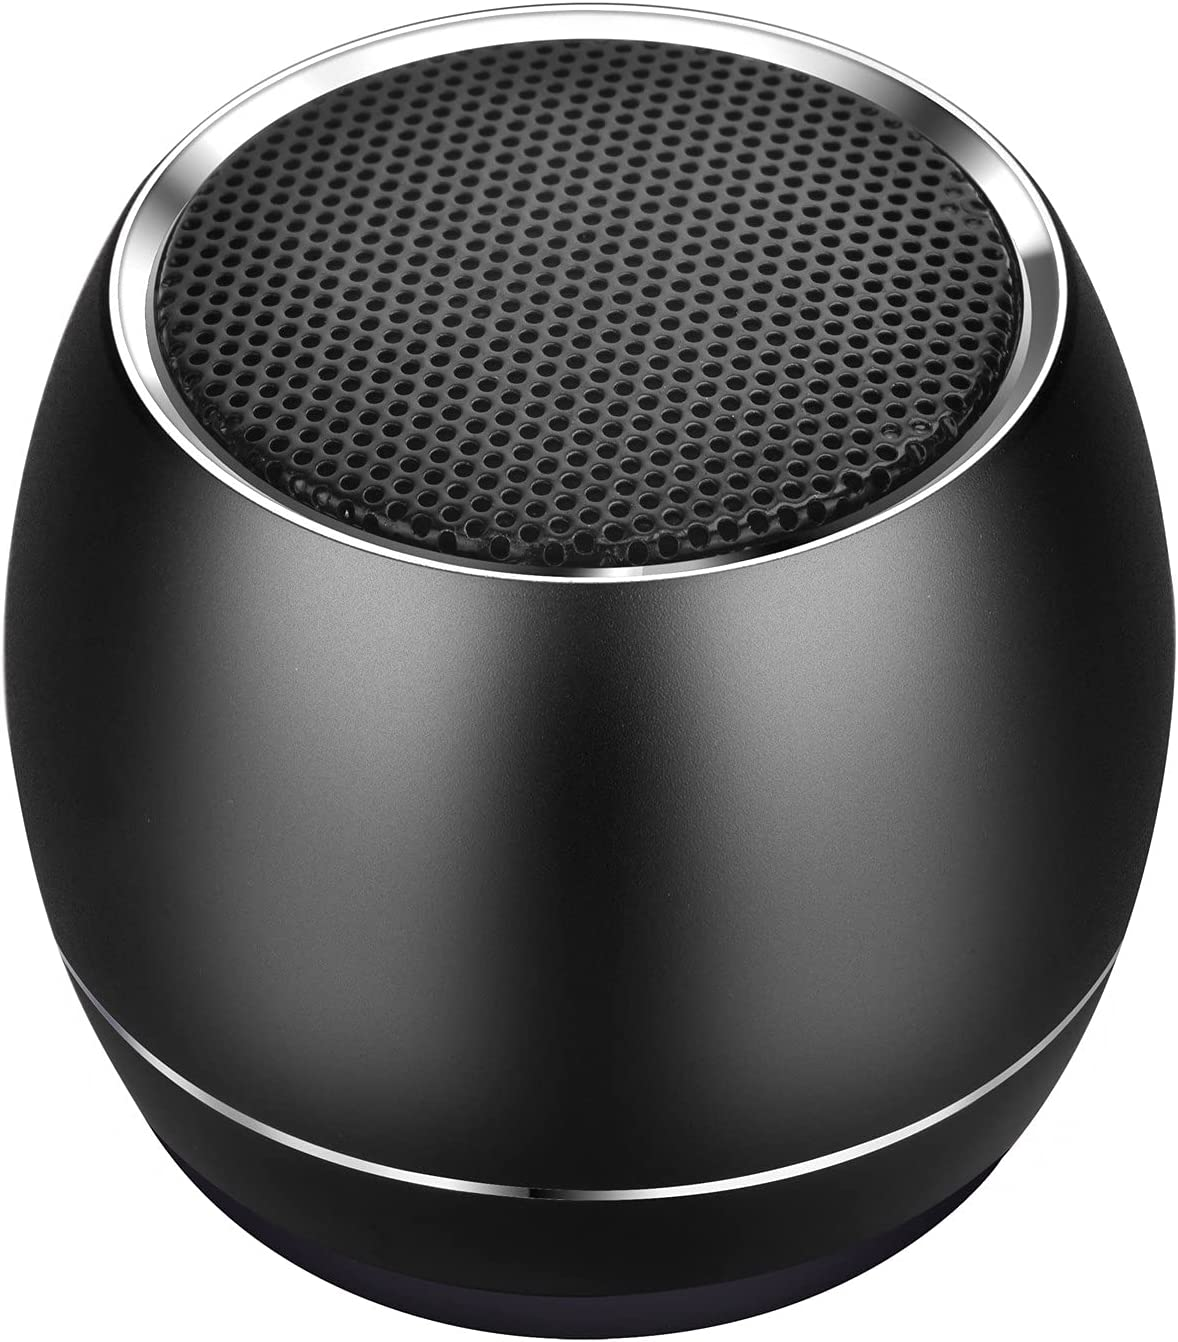 Portable Bluetooth Speakers,Outdoors Wireless Mini Bluetooth Speaker with Built-in-Mic,Handsfree Call,TF Card,HD Sound and Bass for iPhone Ipad Android Smartphone and More (Black)